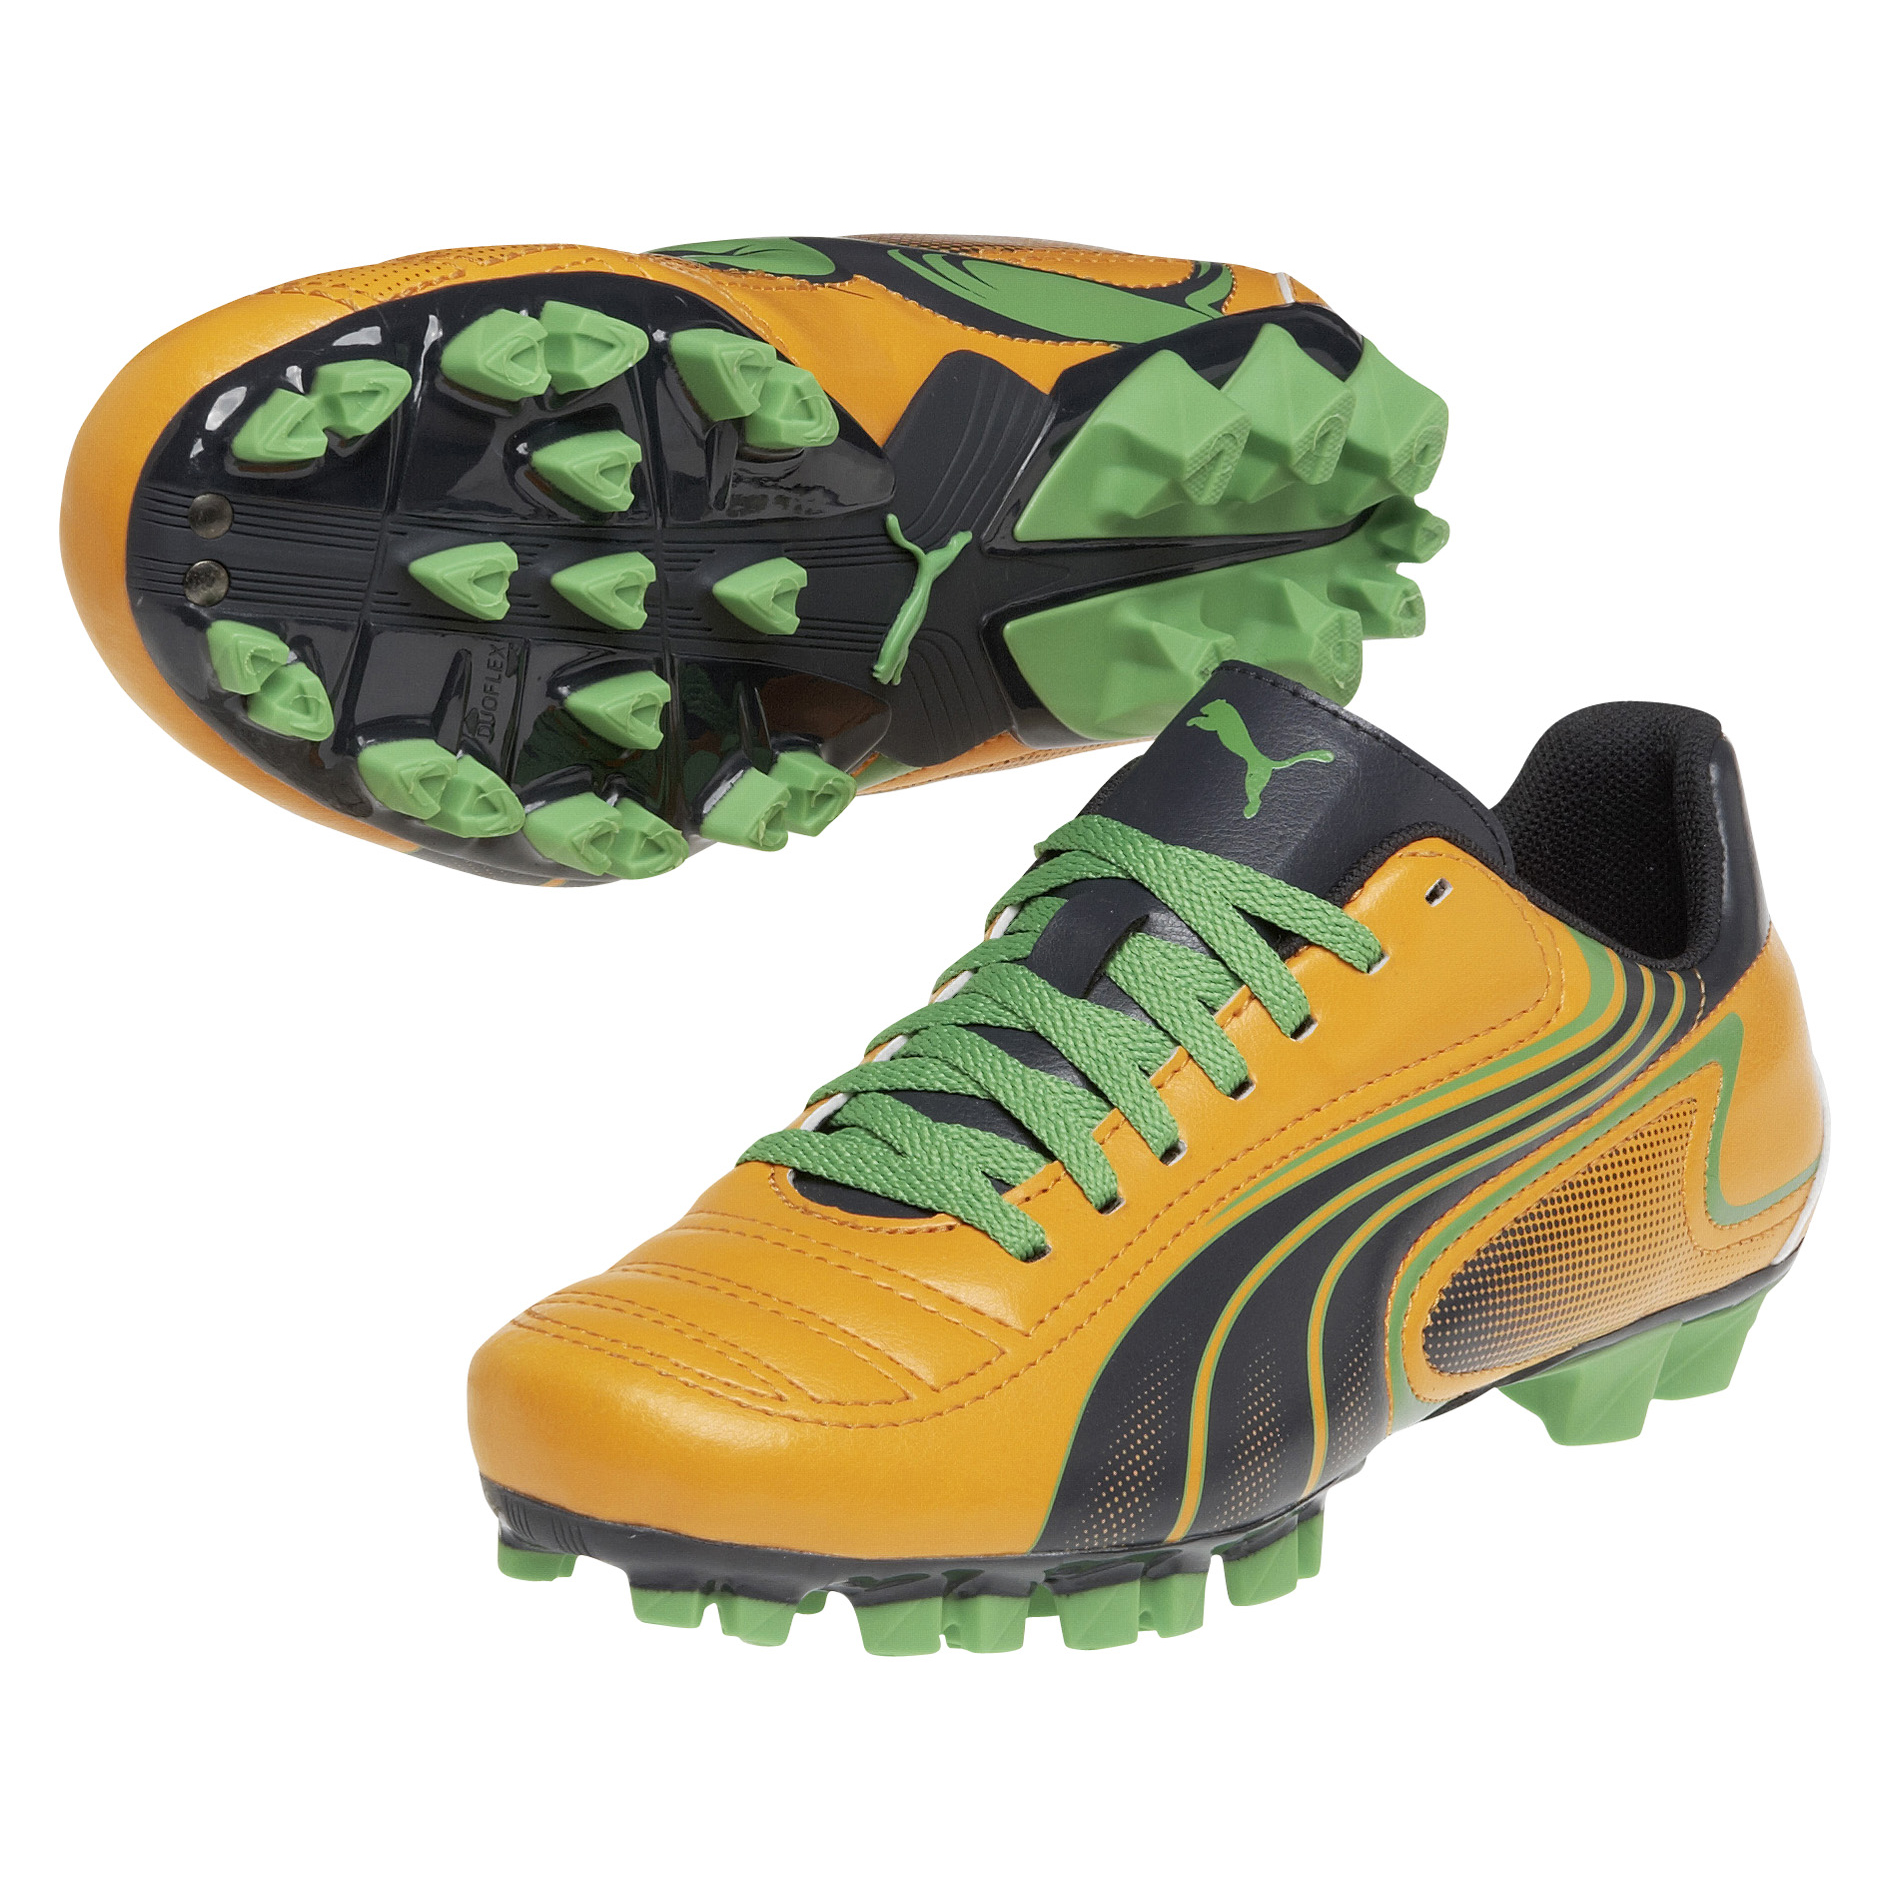 Puma Powercat V6.11 Firm Ground Football Boots  -Kids - Flame Orange/Team Charcoal/Classic Green